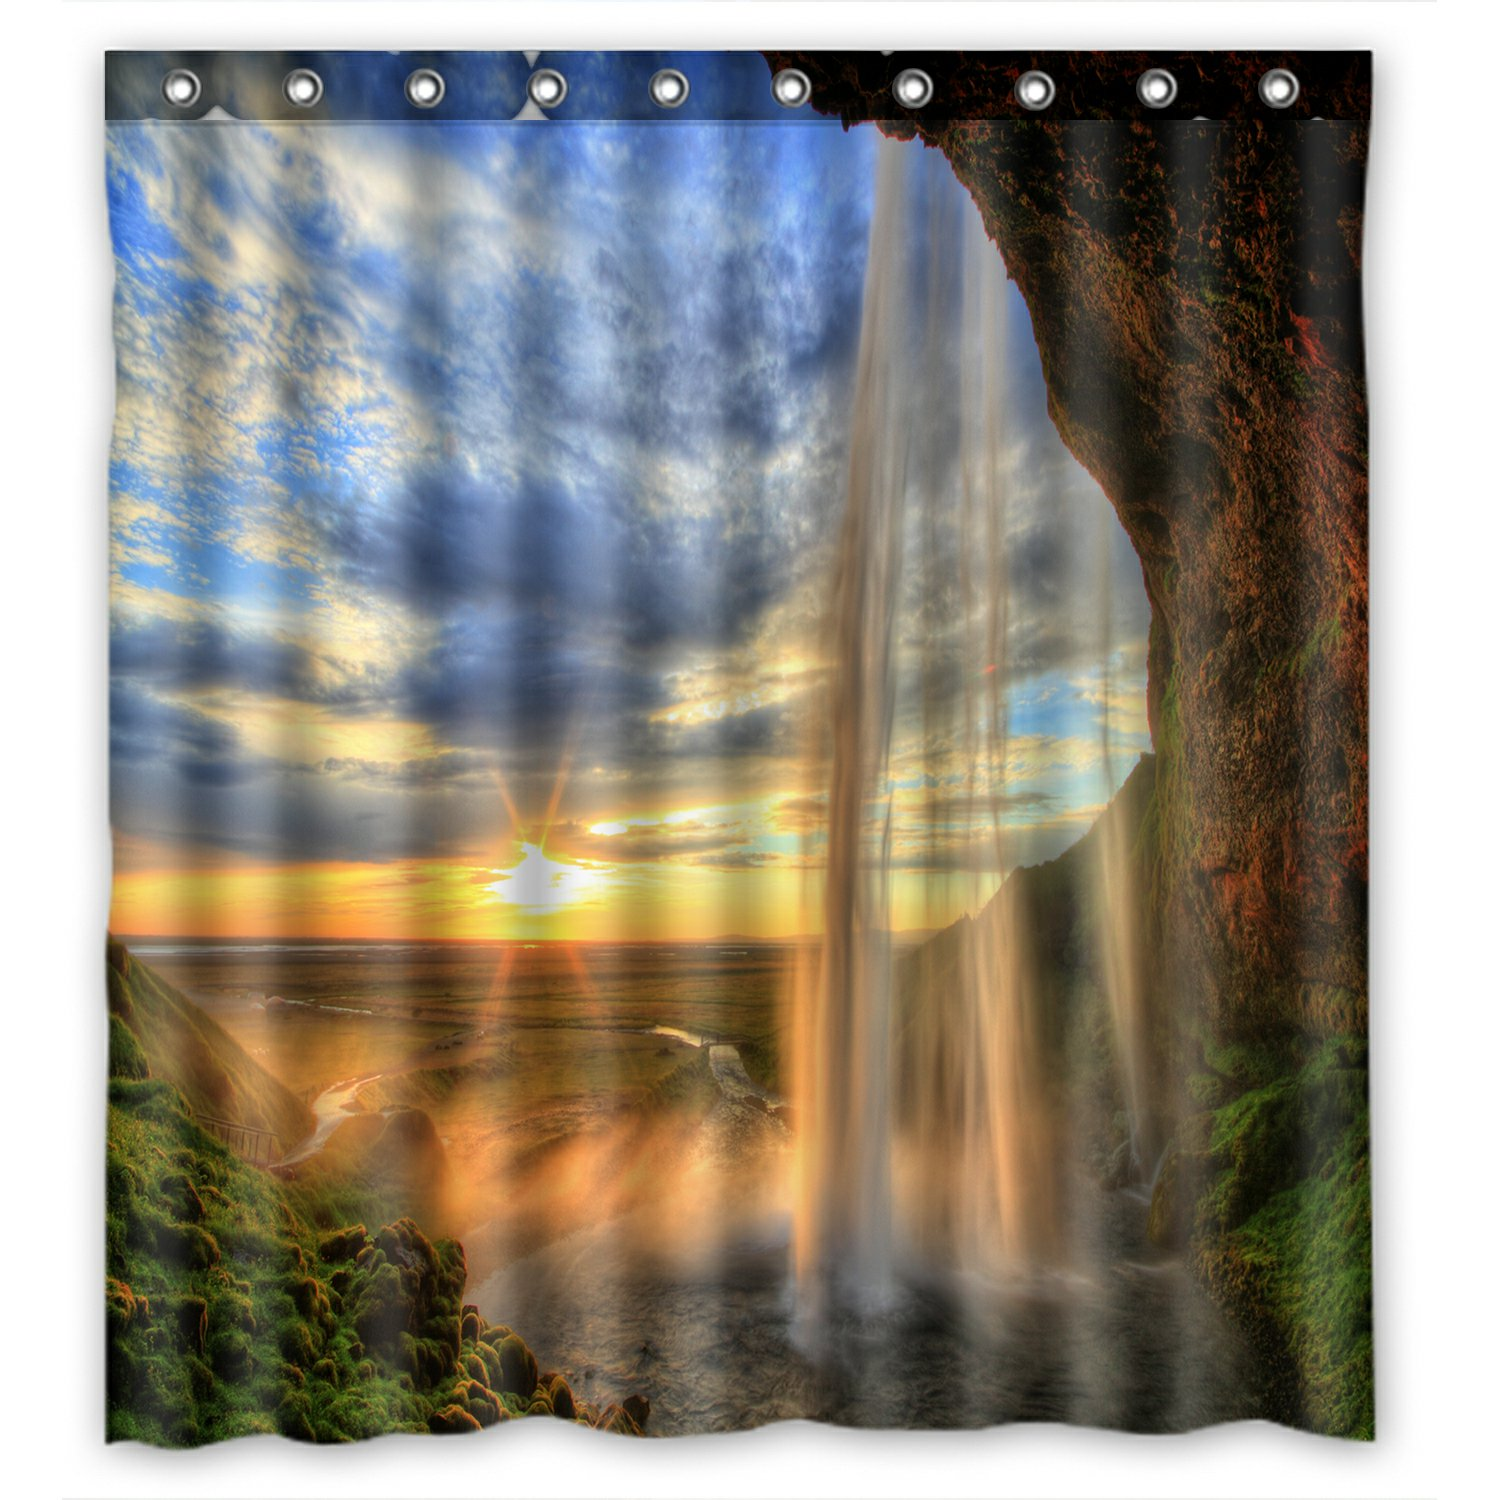 phfzk landscape nature scenery shower curtain, waterfall mountain at sunset, iceland polyester